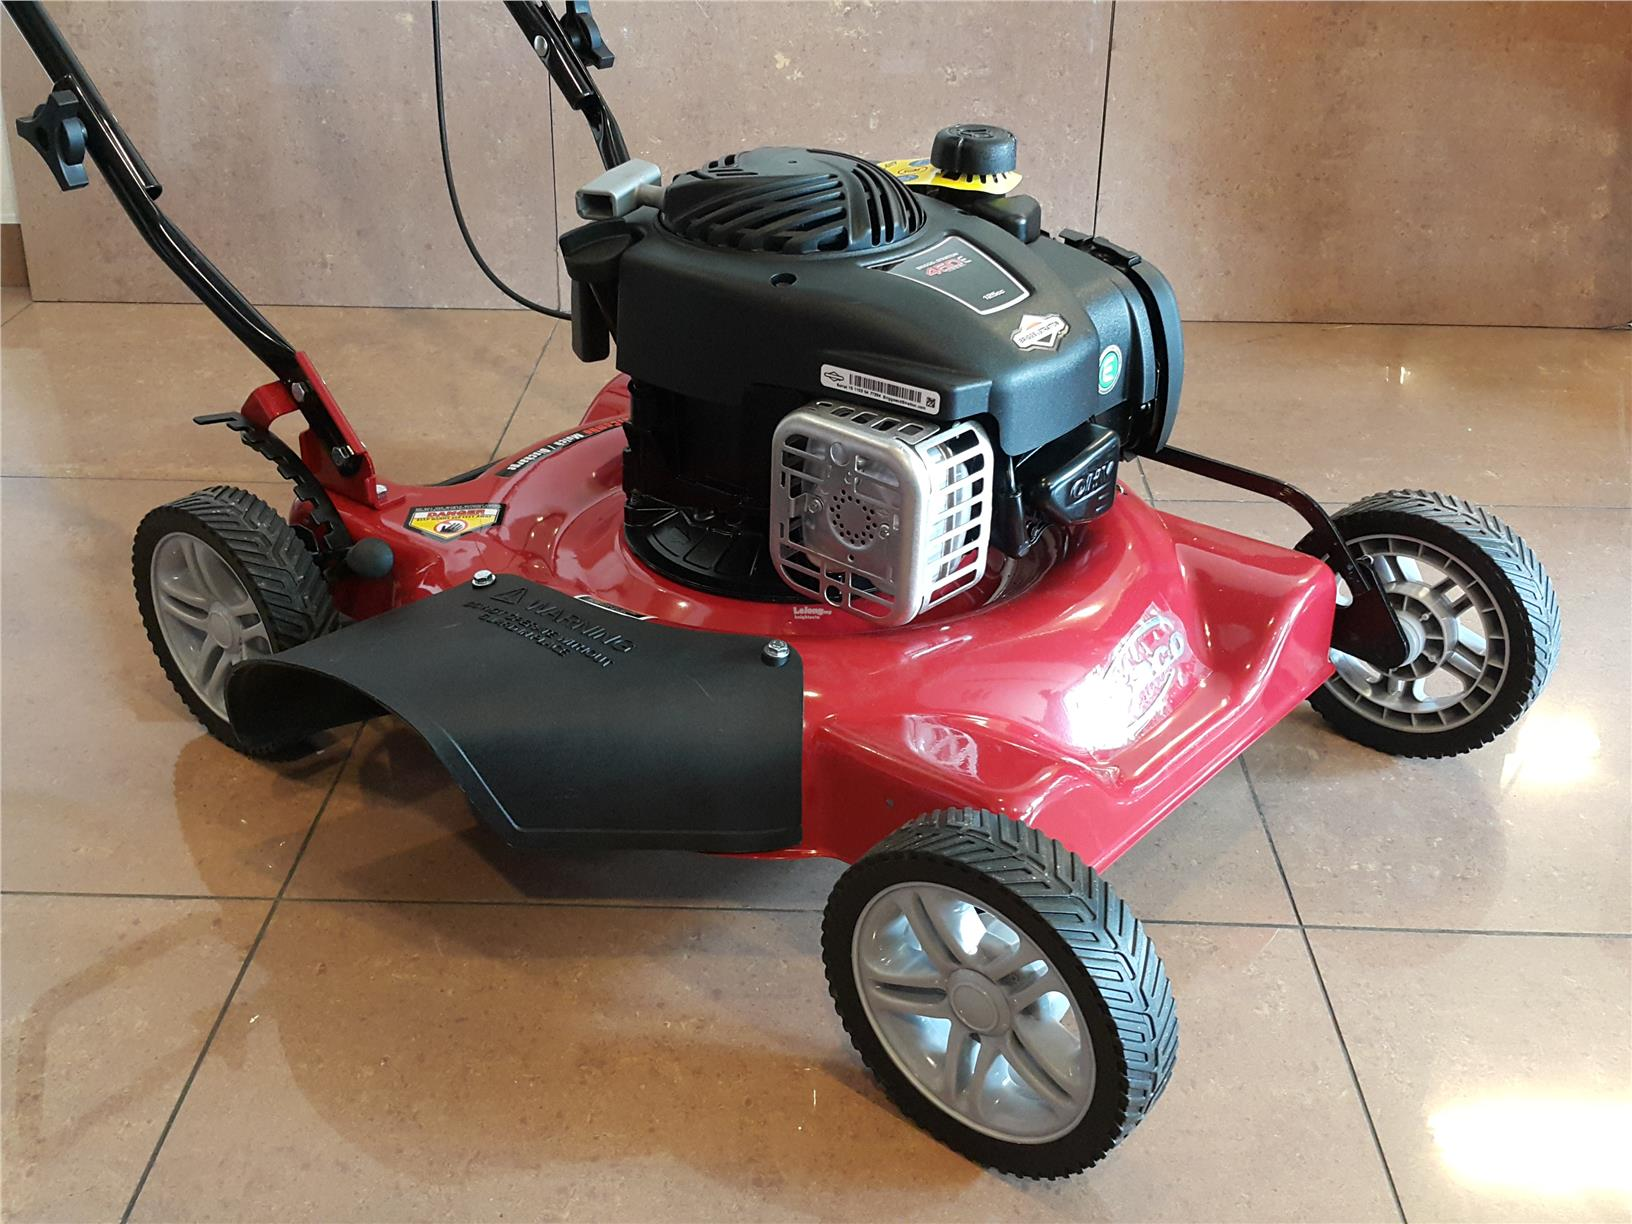 USA Briggs and Stratton(B&S) GASOLINE/PETROL CJ20' LAWN MOWER ID118111